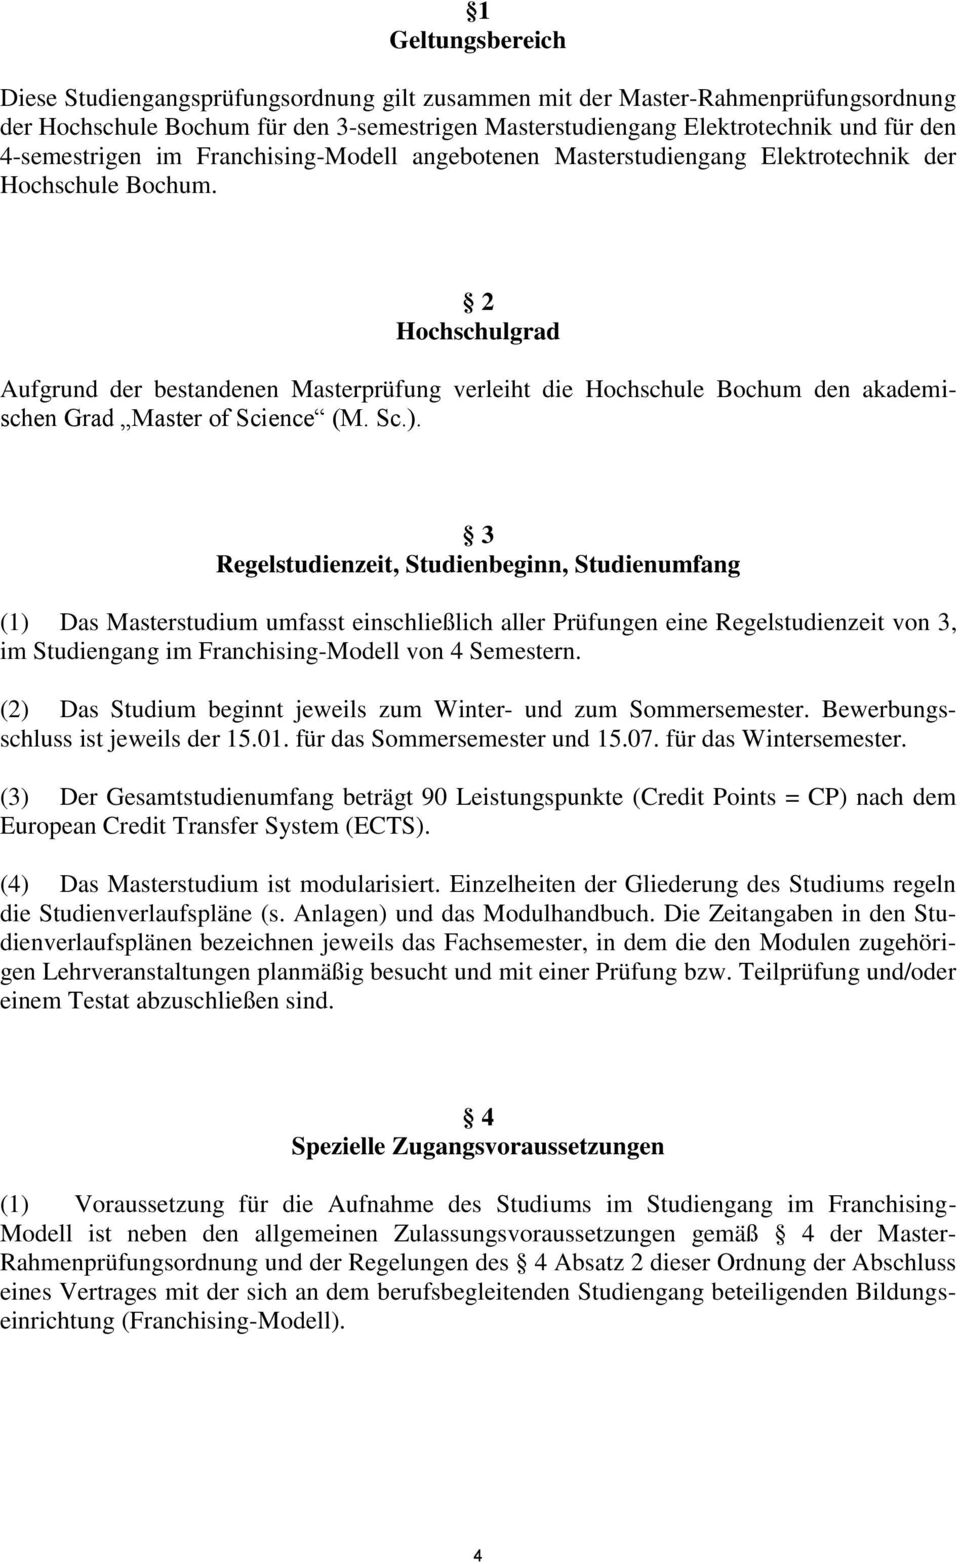 Tolle Apothekerzielwiederholung Probe Ideen - Entry Level Resume ...